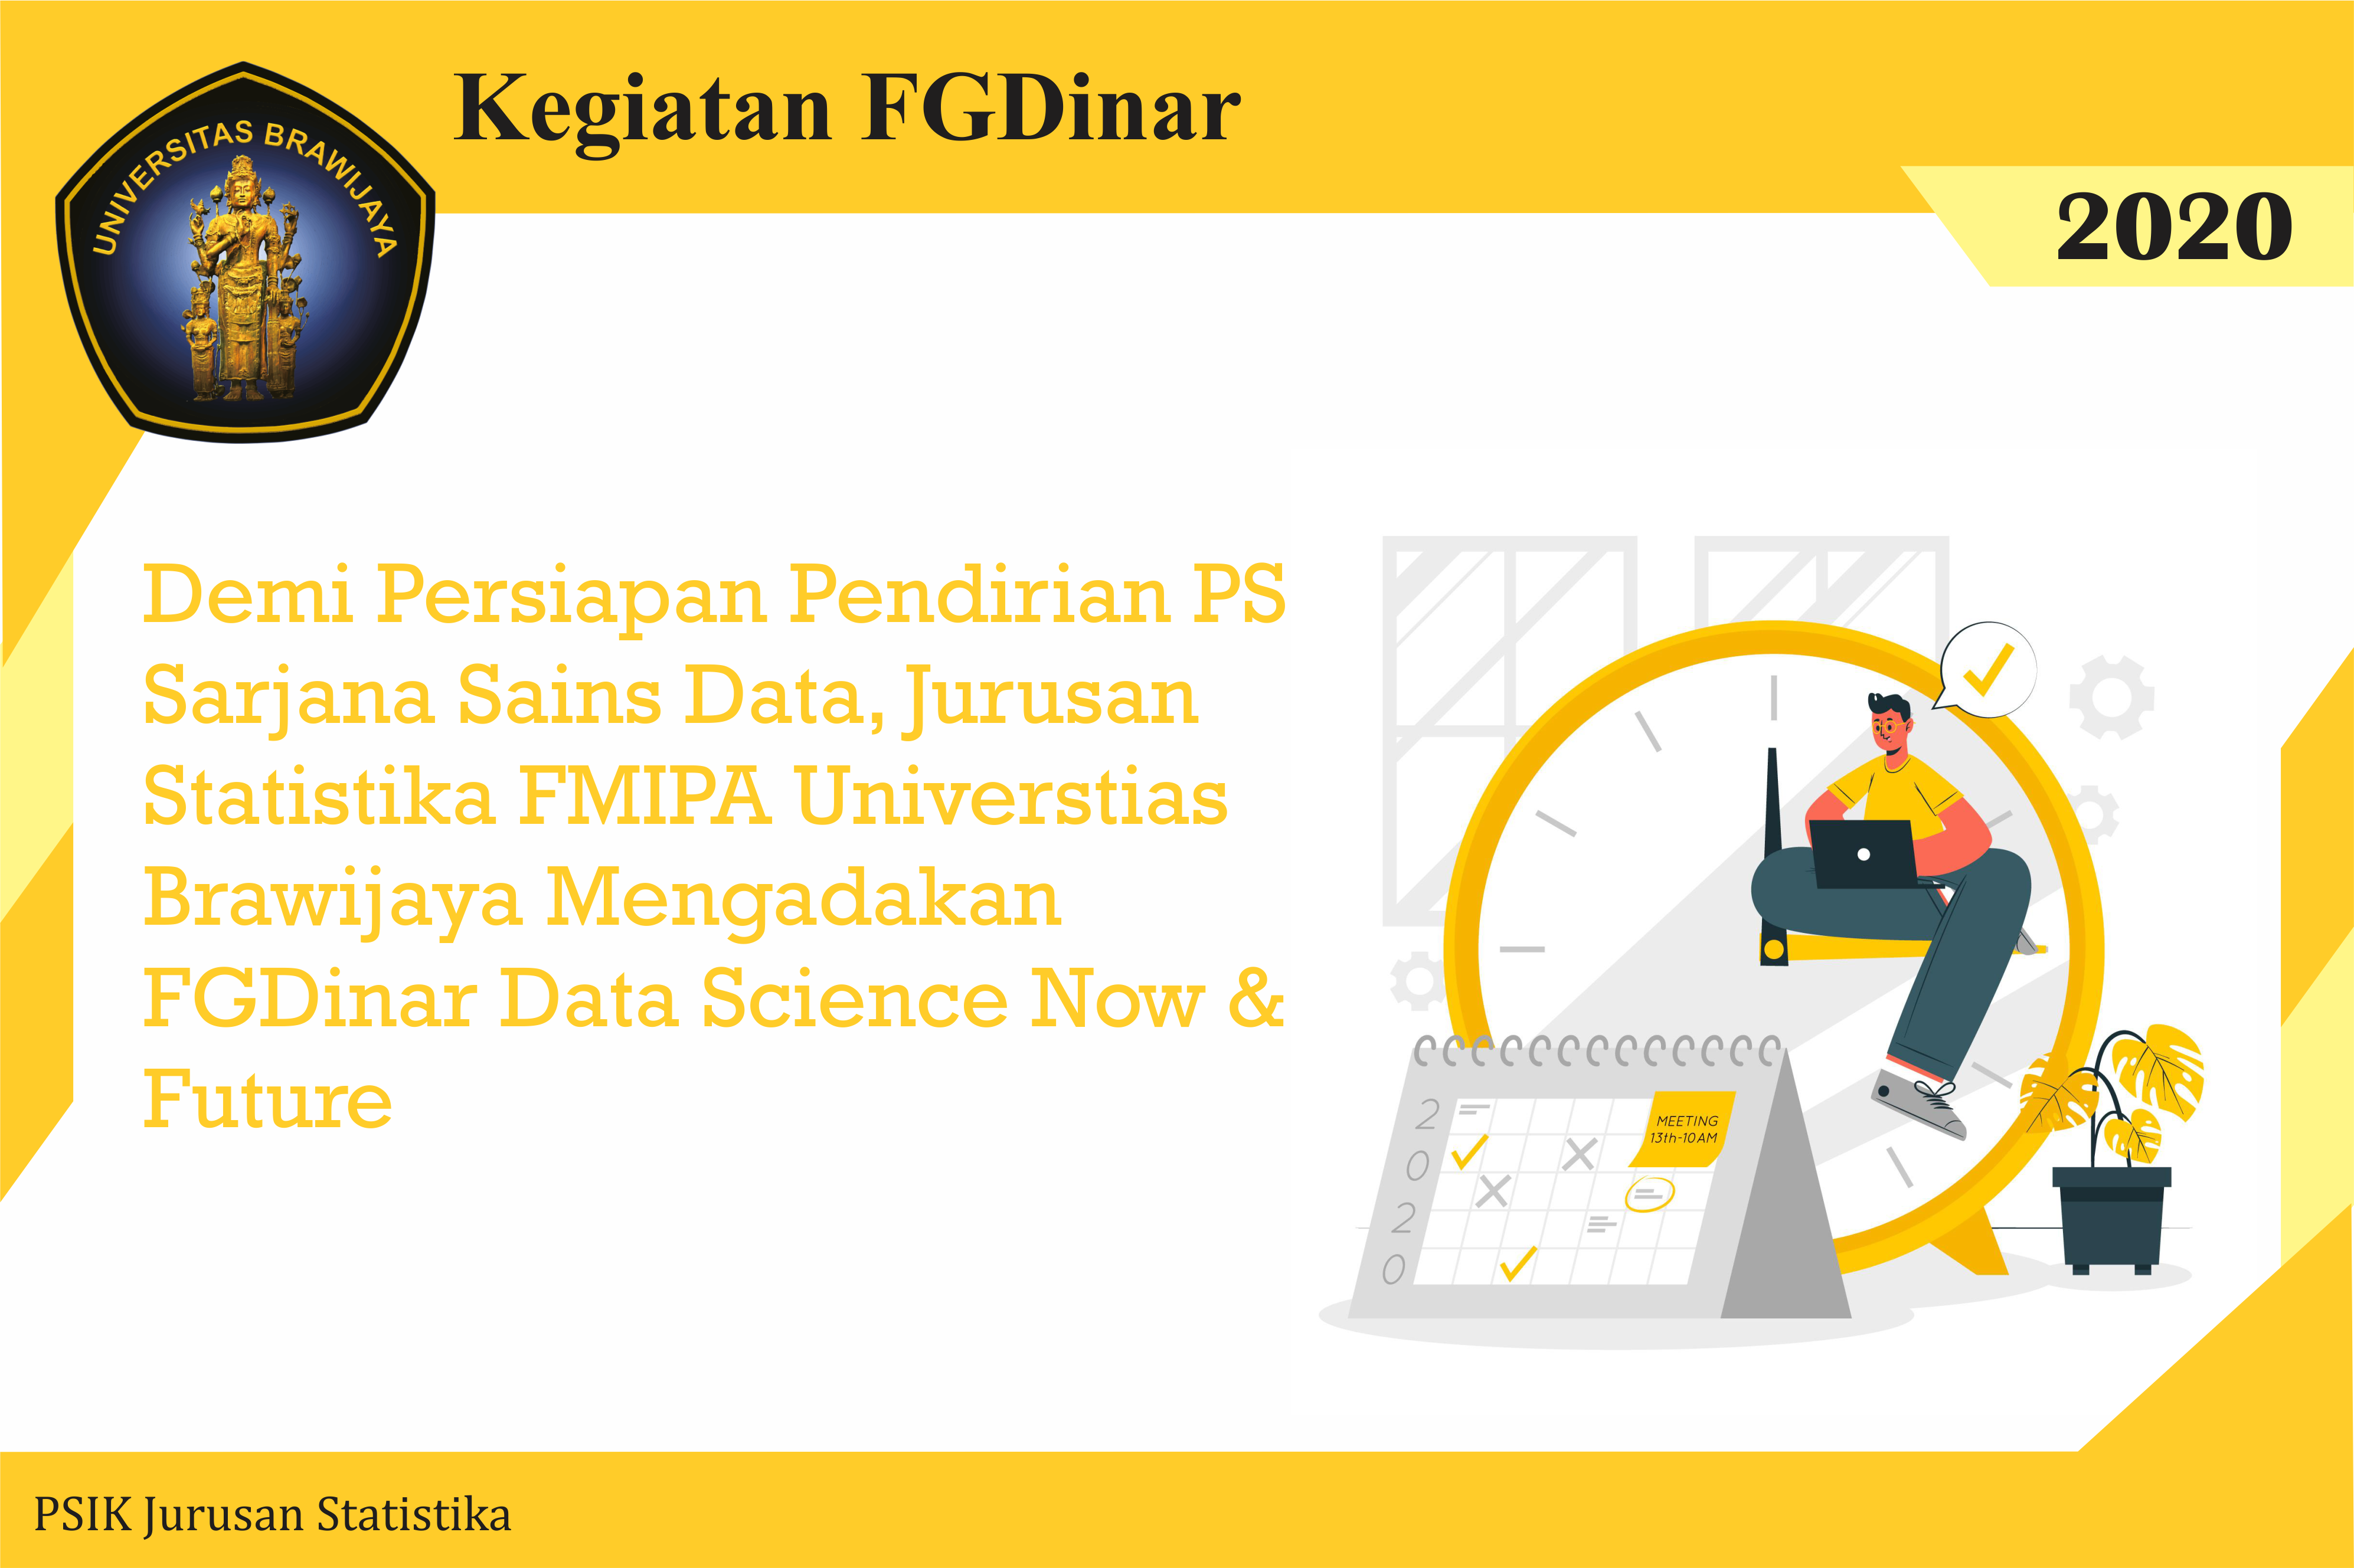 FGDinar Data Science Now & Future